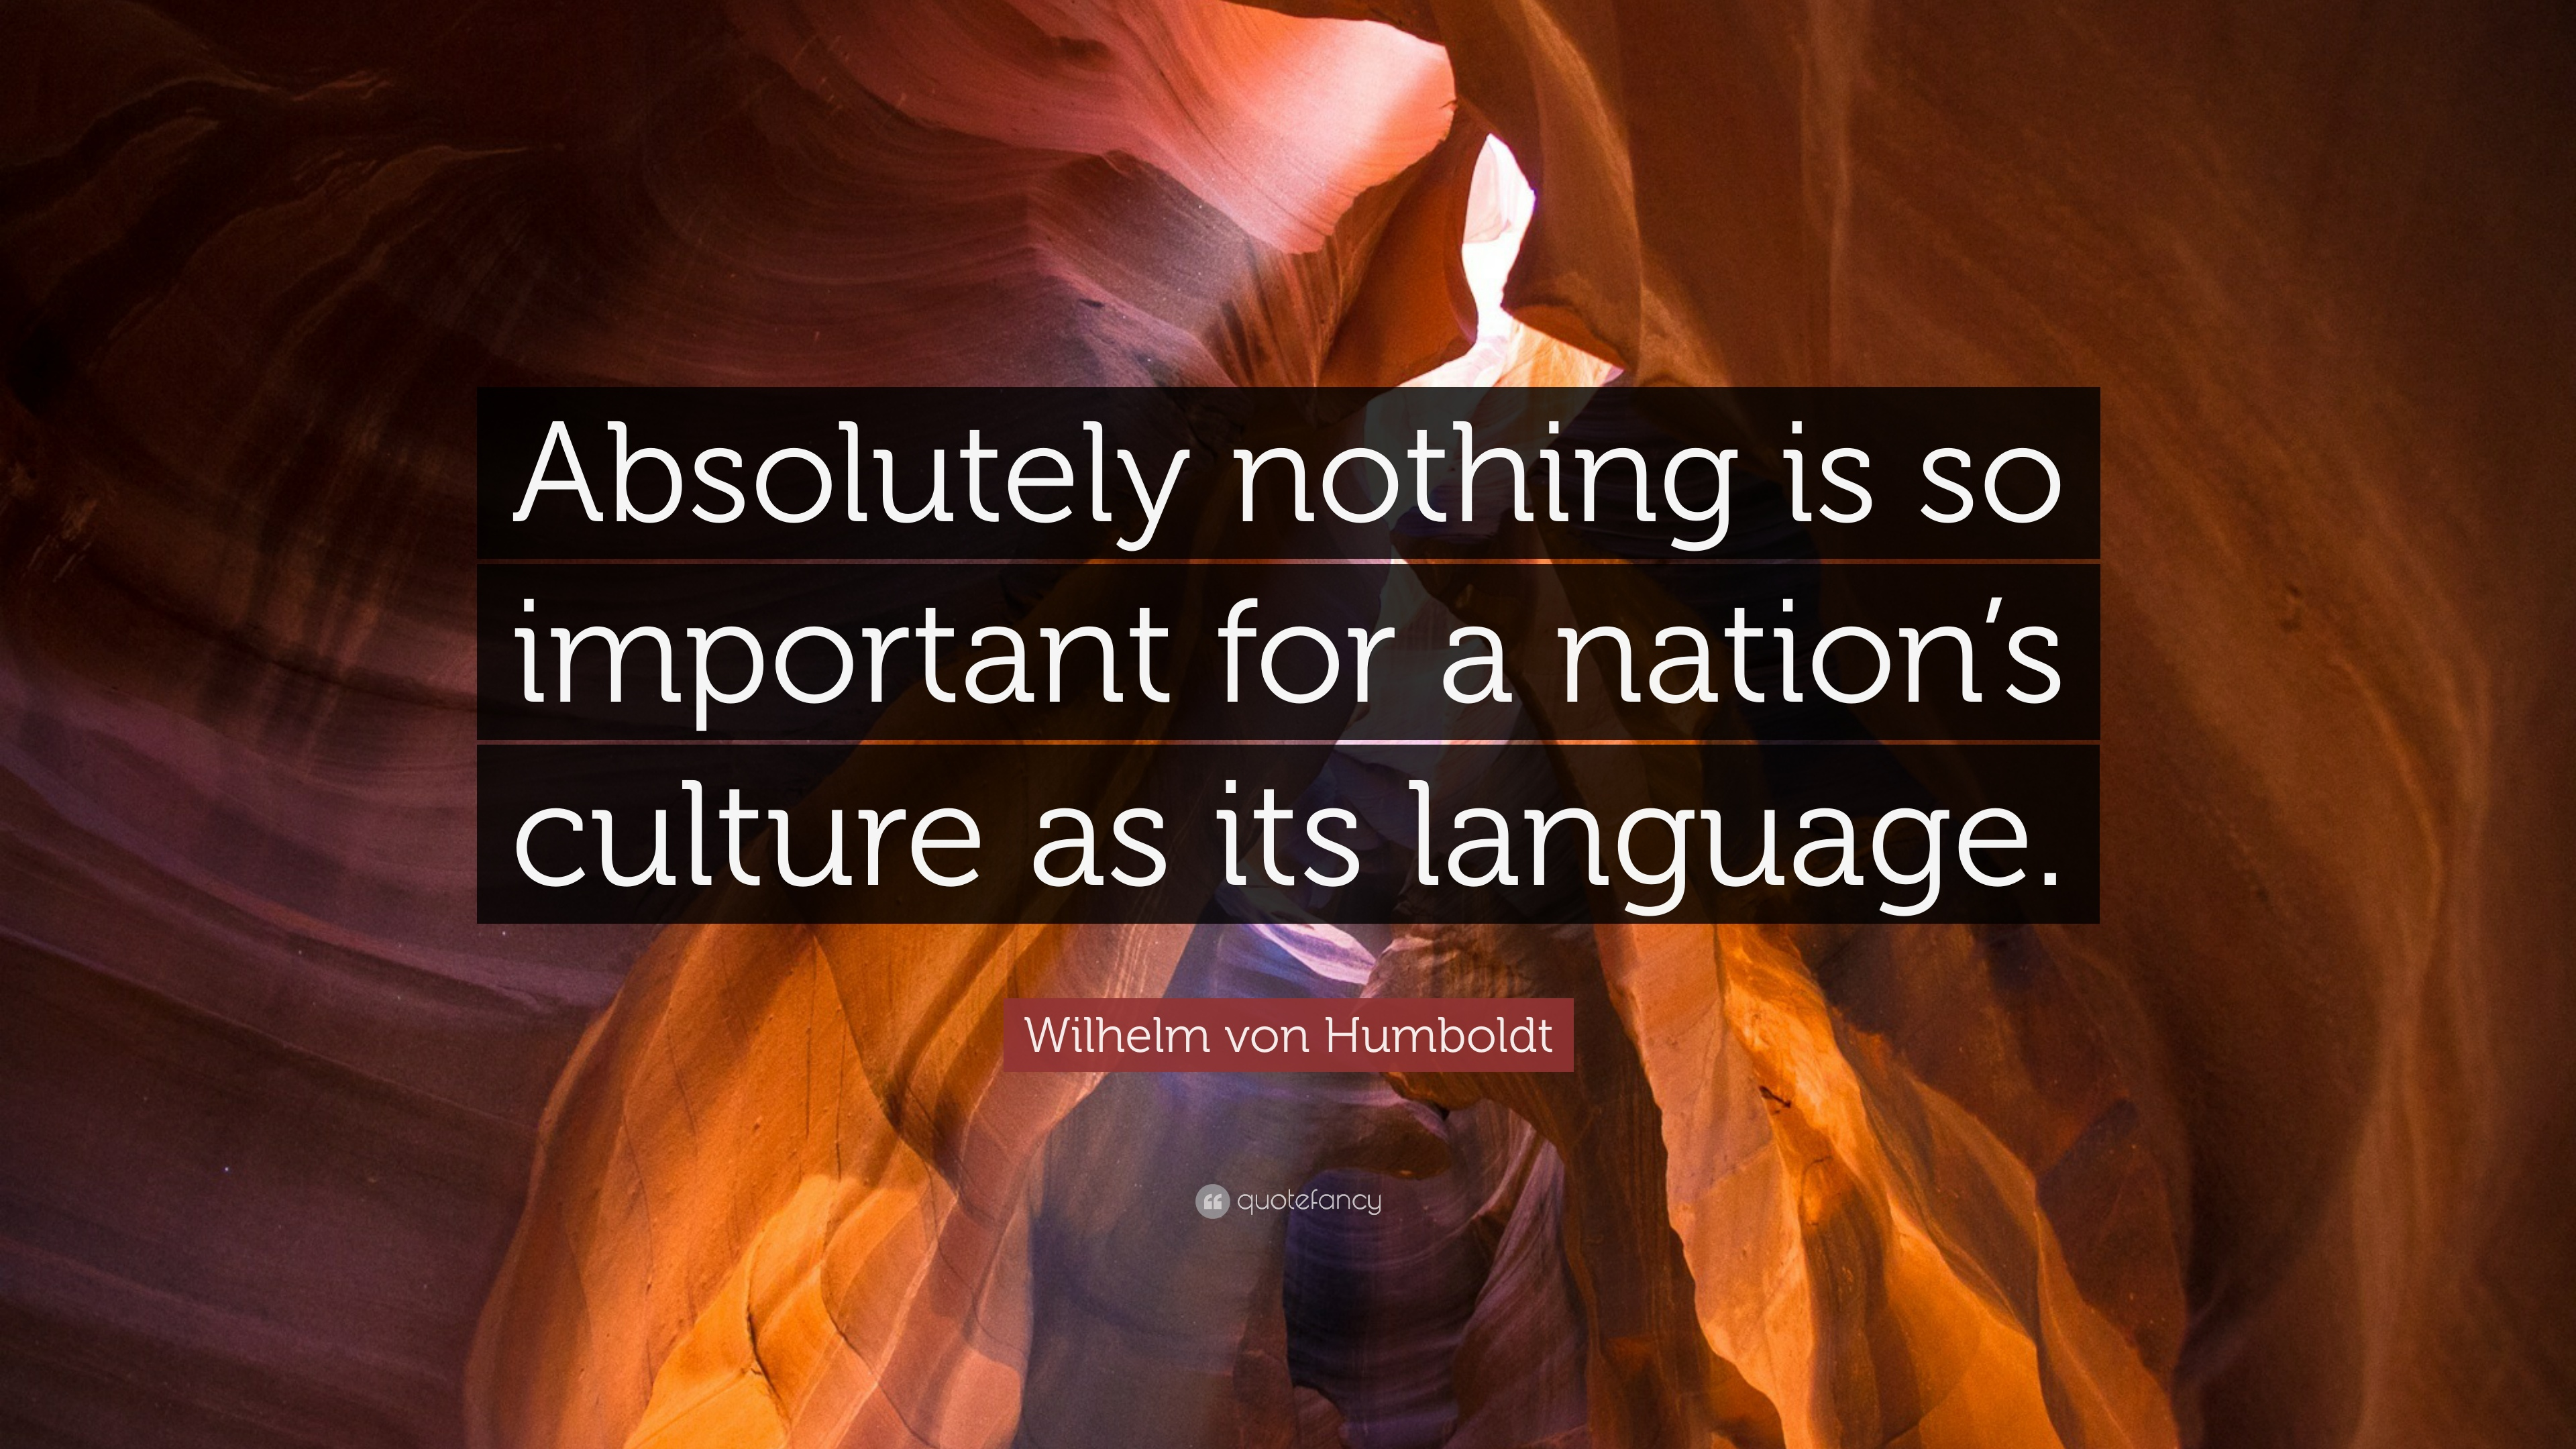 why is language so significant to culture